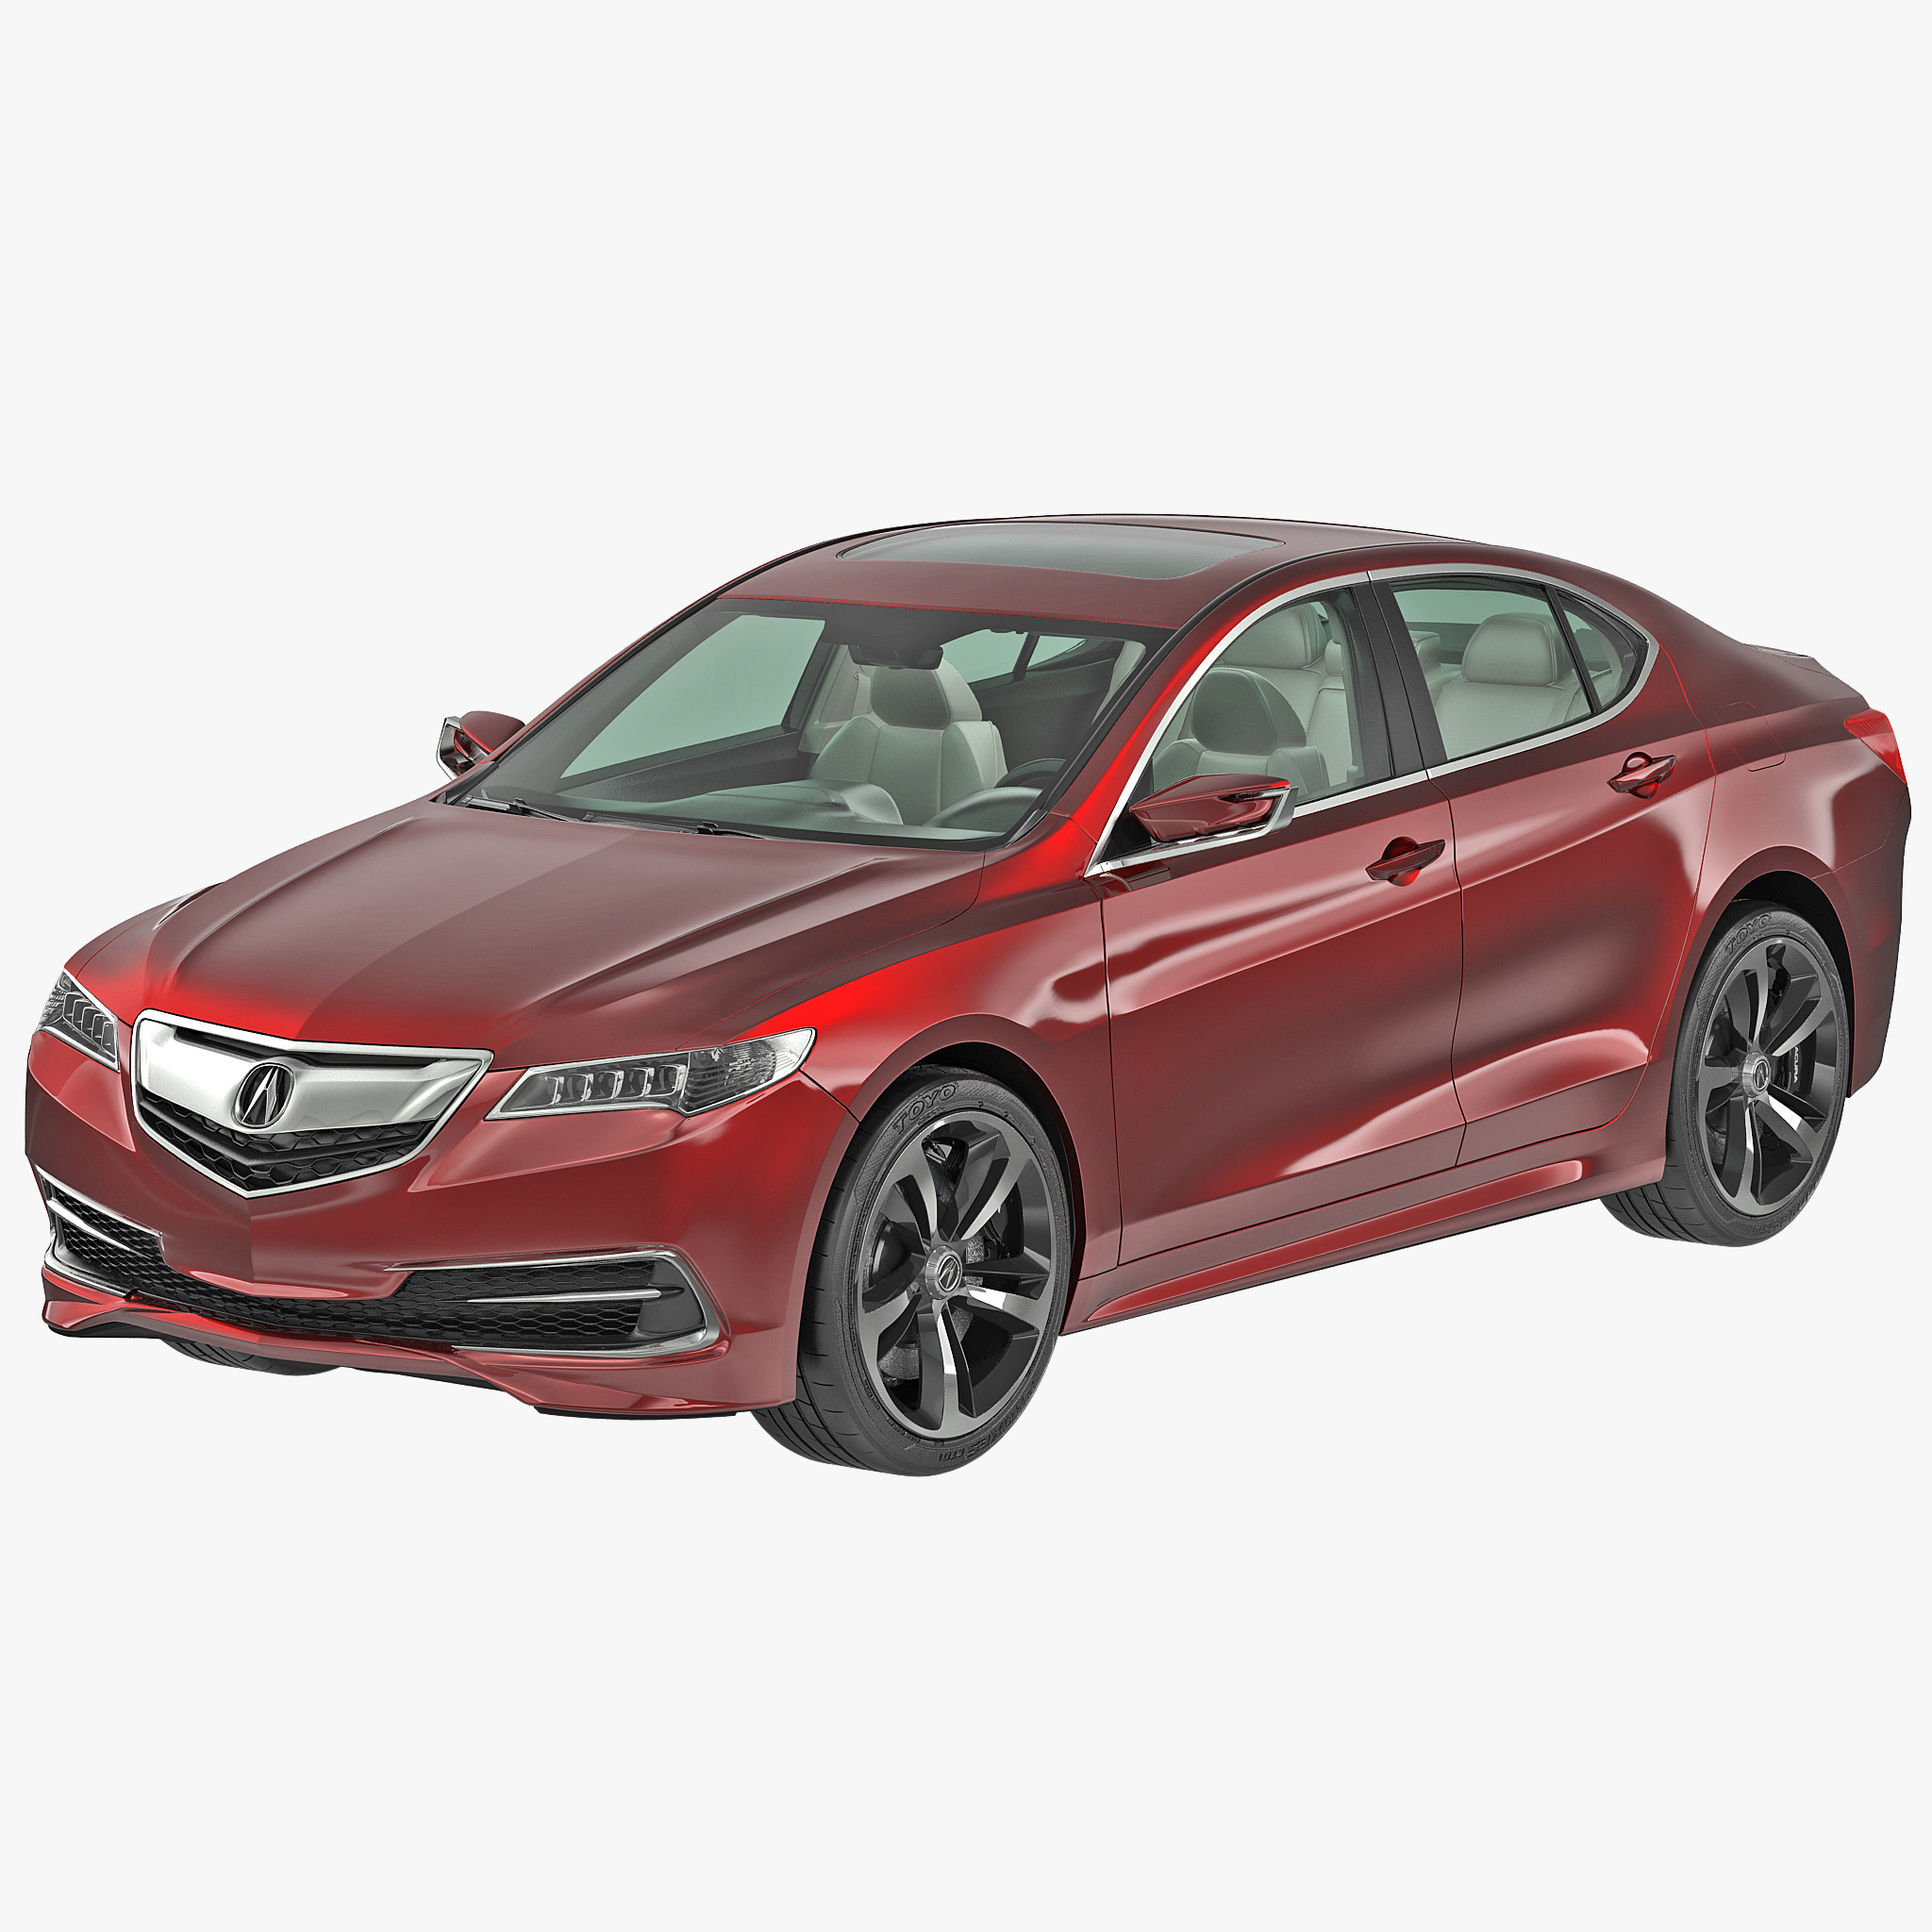 New Acura Tlx: 3d Acura Tlx 2015 Model